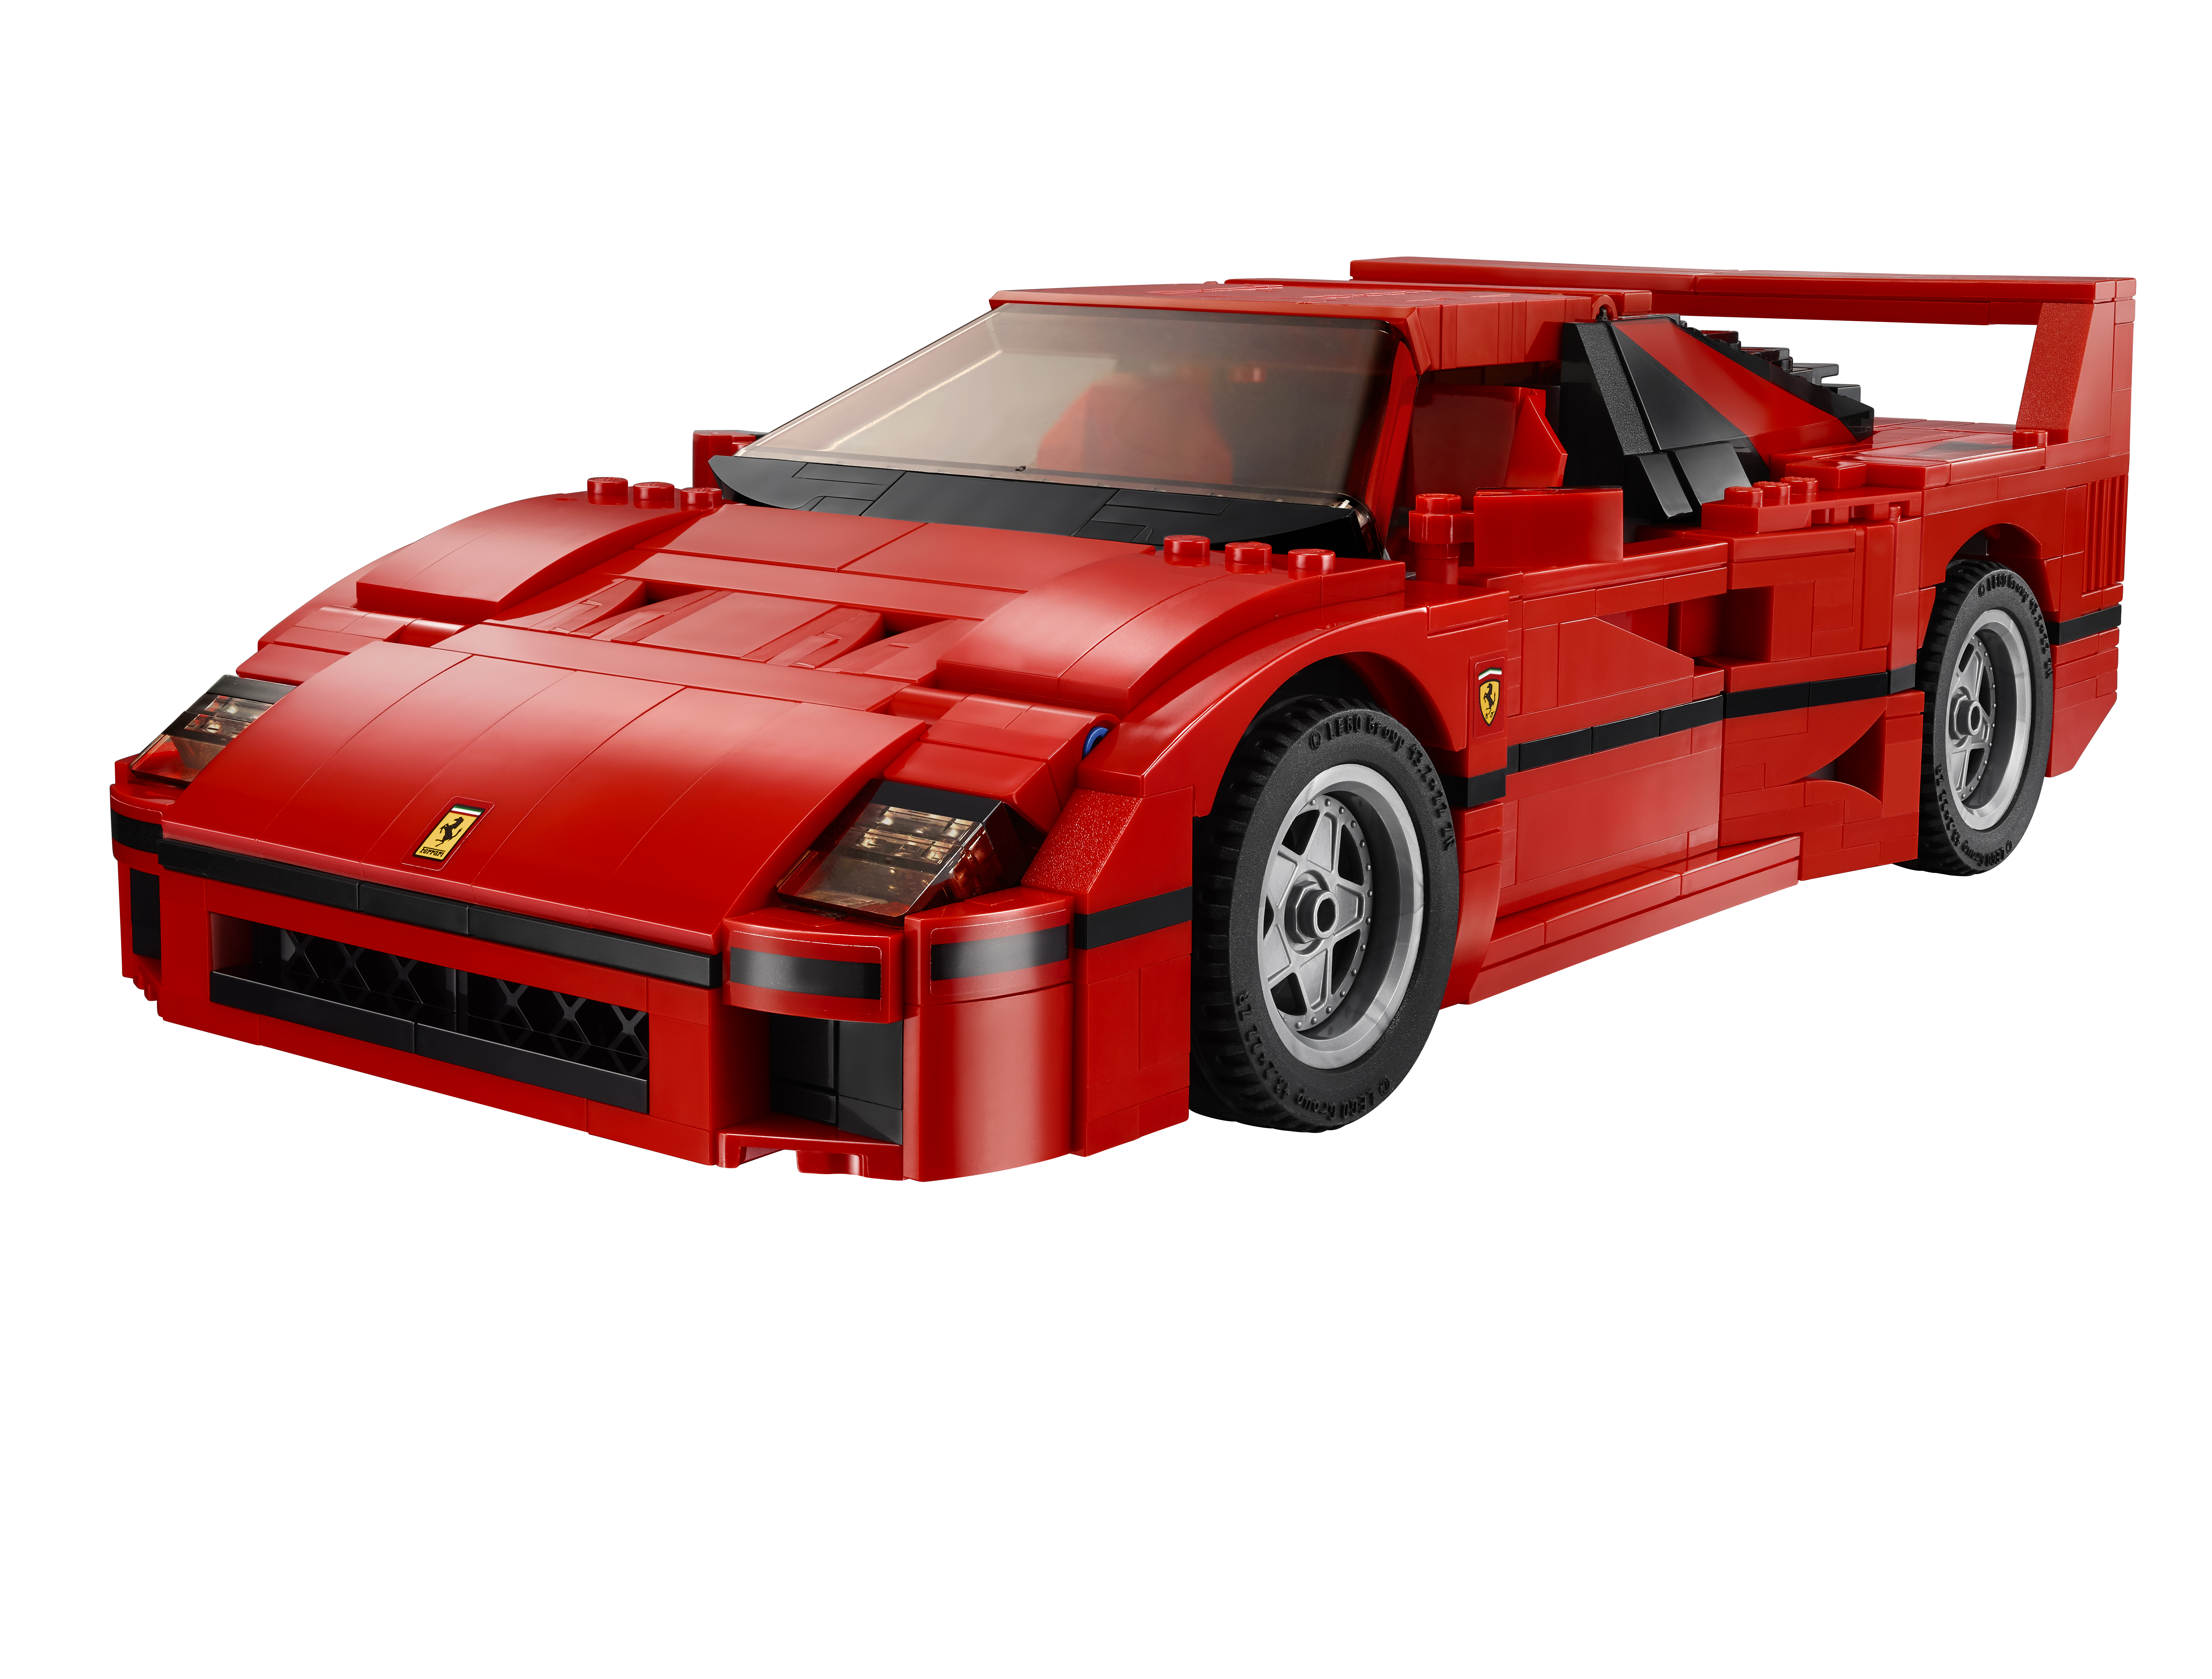 Ferrari f40 19143832371bf299b2e9do 191438273118909b5072eo 1913464559289f609d664o 18952790508505fe19cffo 18517867464563ddfb701o vanachro Images